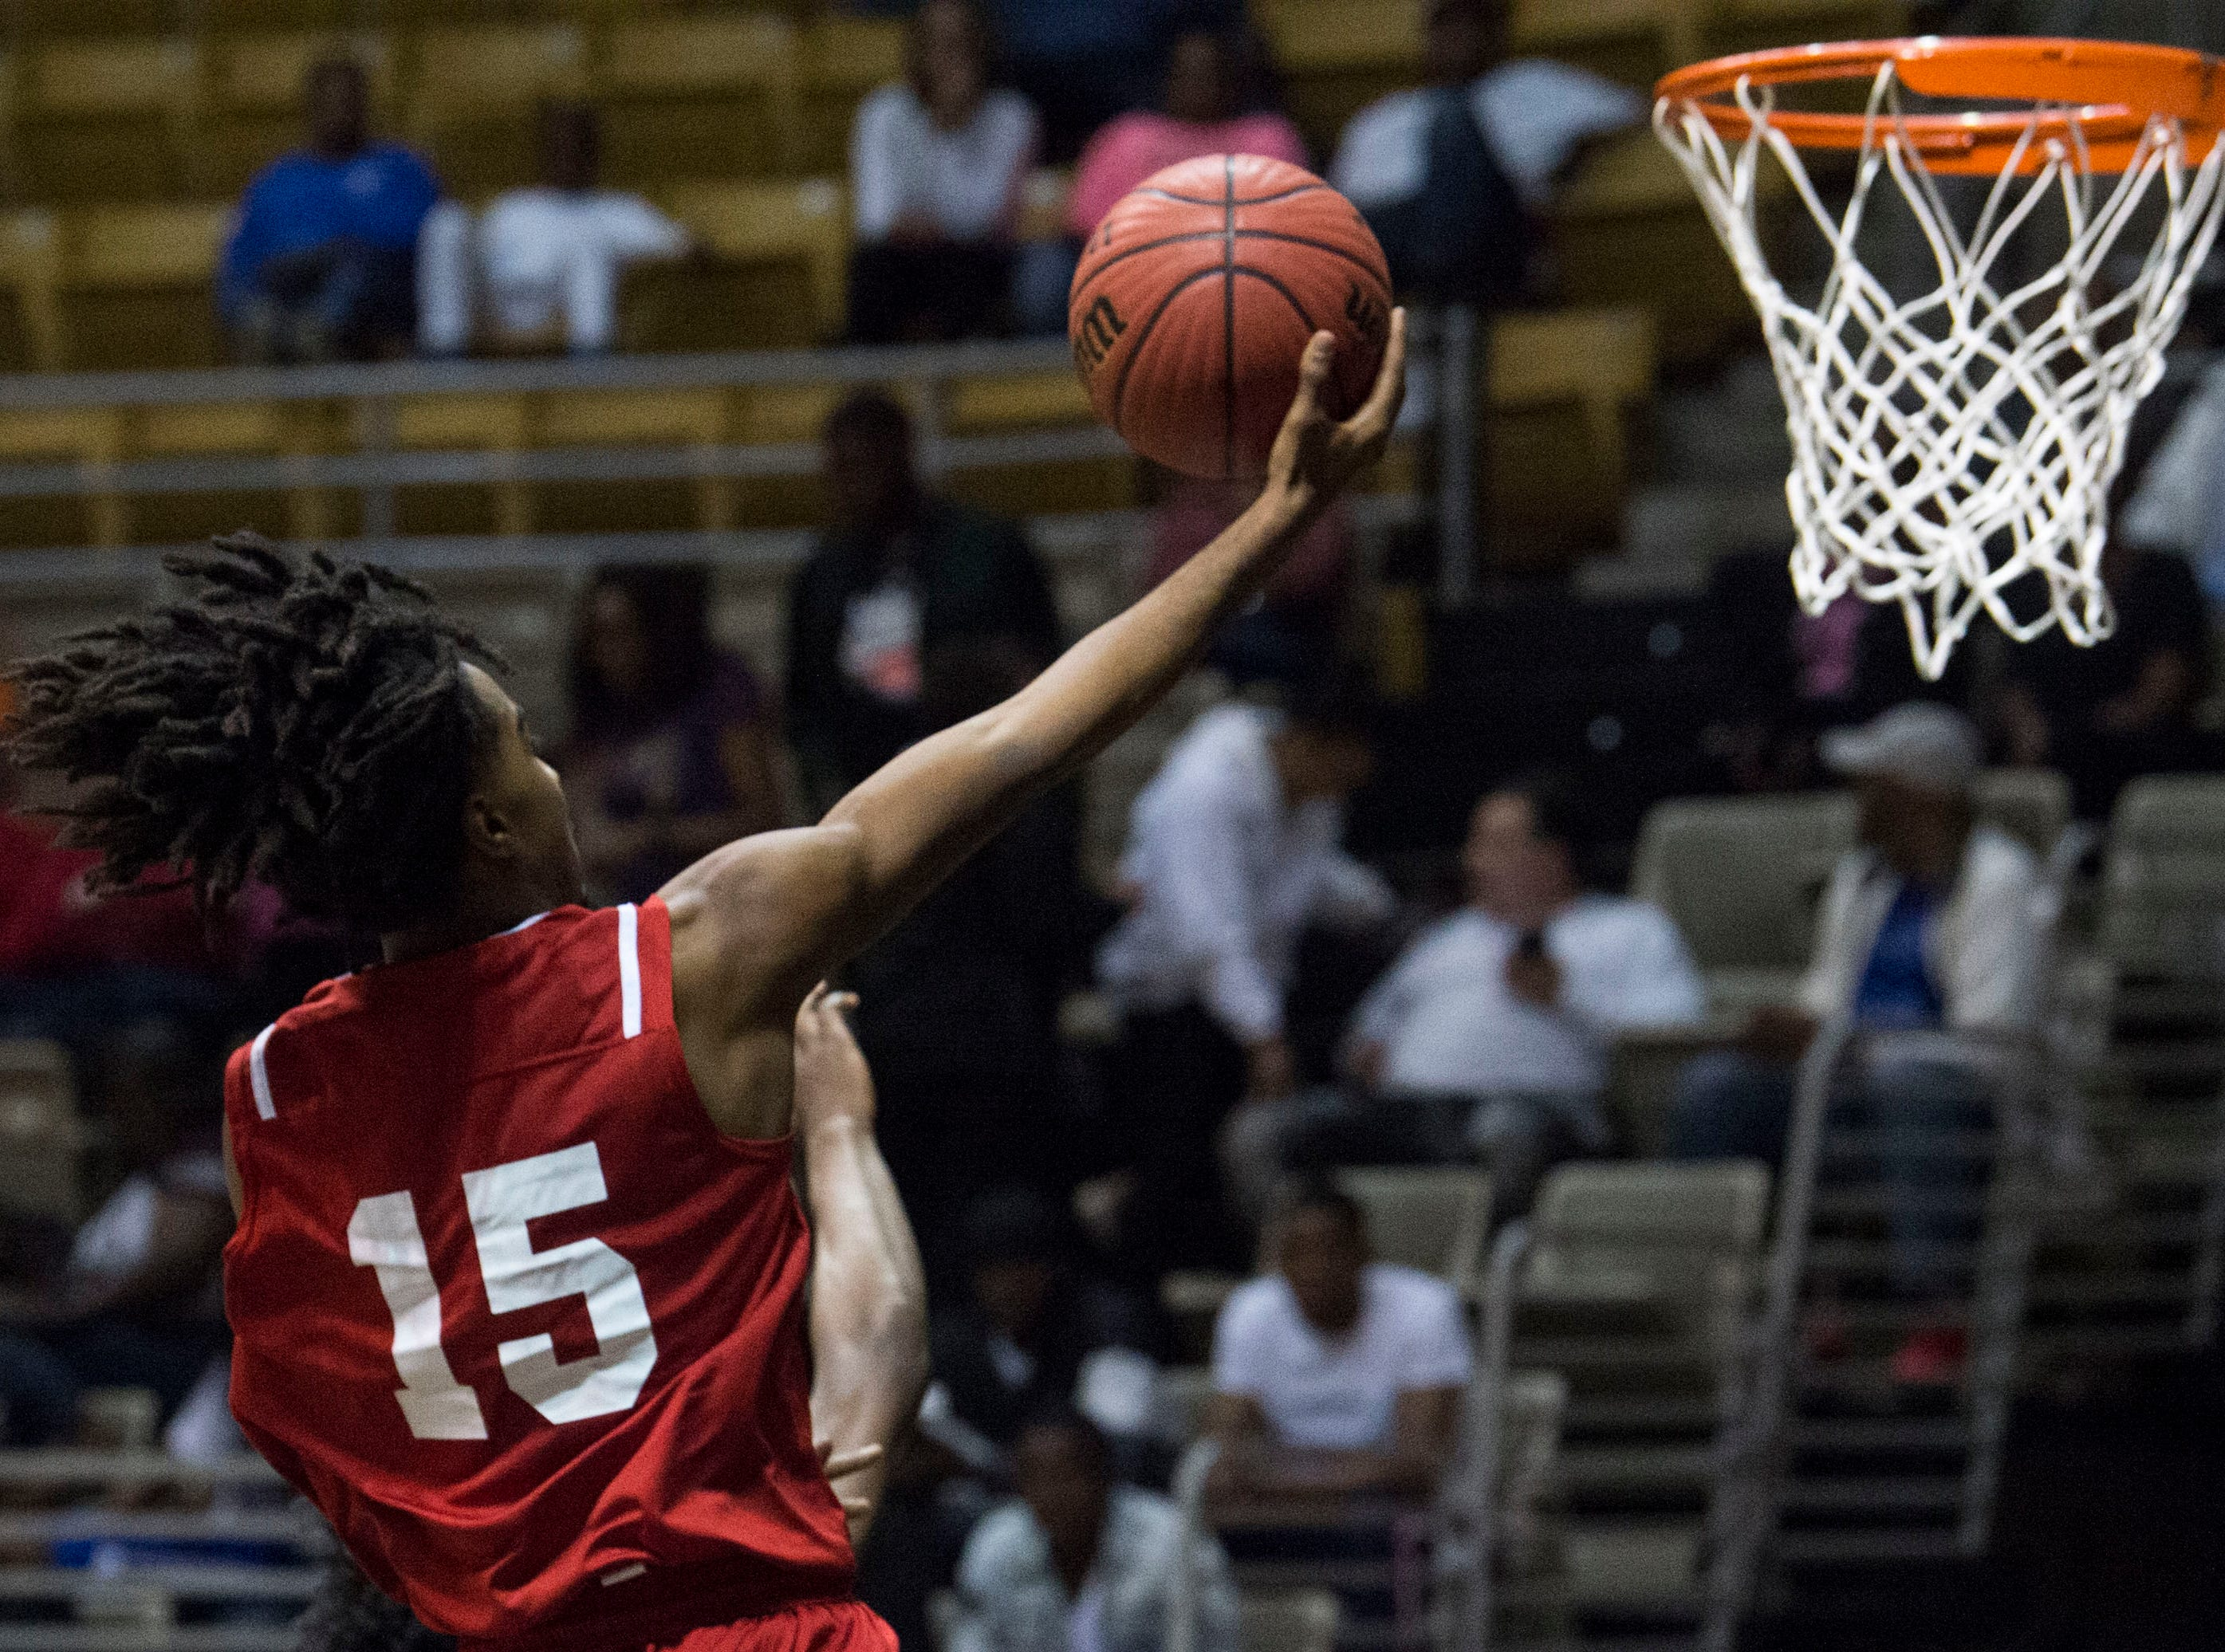 Alabama's Brandon Nicholas (15) goes up for a layup during the Alabama-Mississippi All-Star game at the Dunn-Oliver Acadome in Montgomery, Ala., on Friday, March 15, 2019. Mississippi All-stars leads the Alabama All-stars 47-39 at halftime.